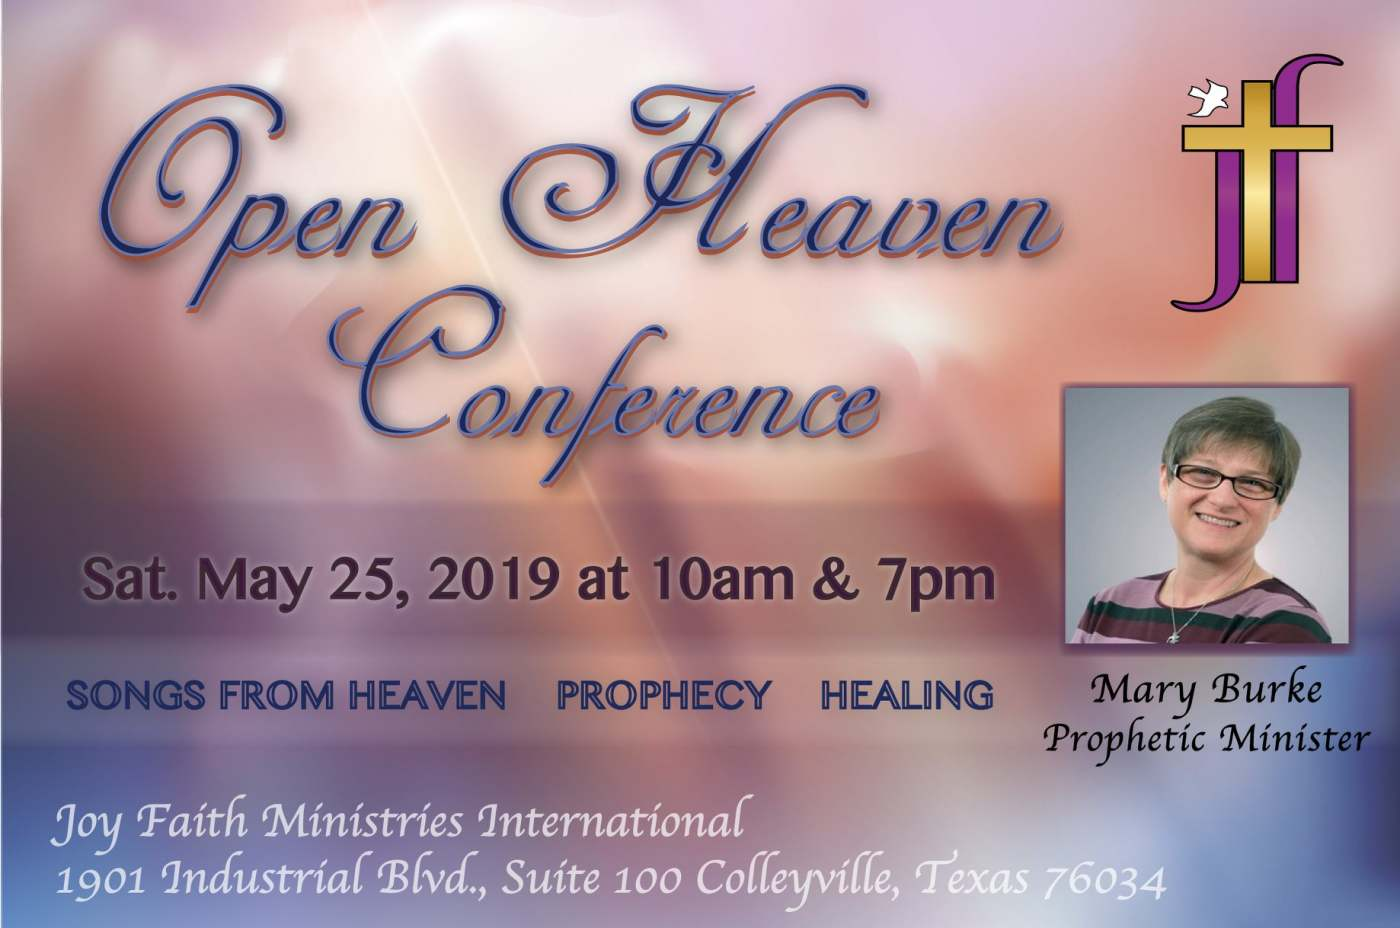 Open Heaven Conference